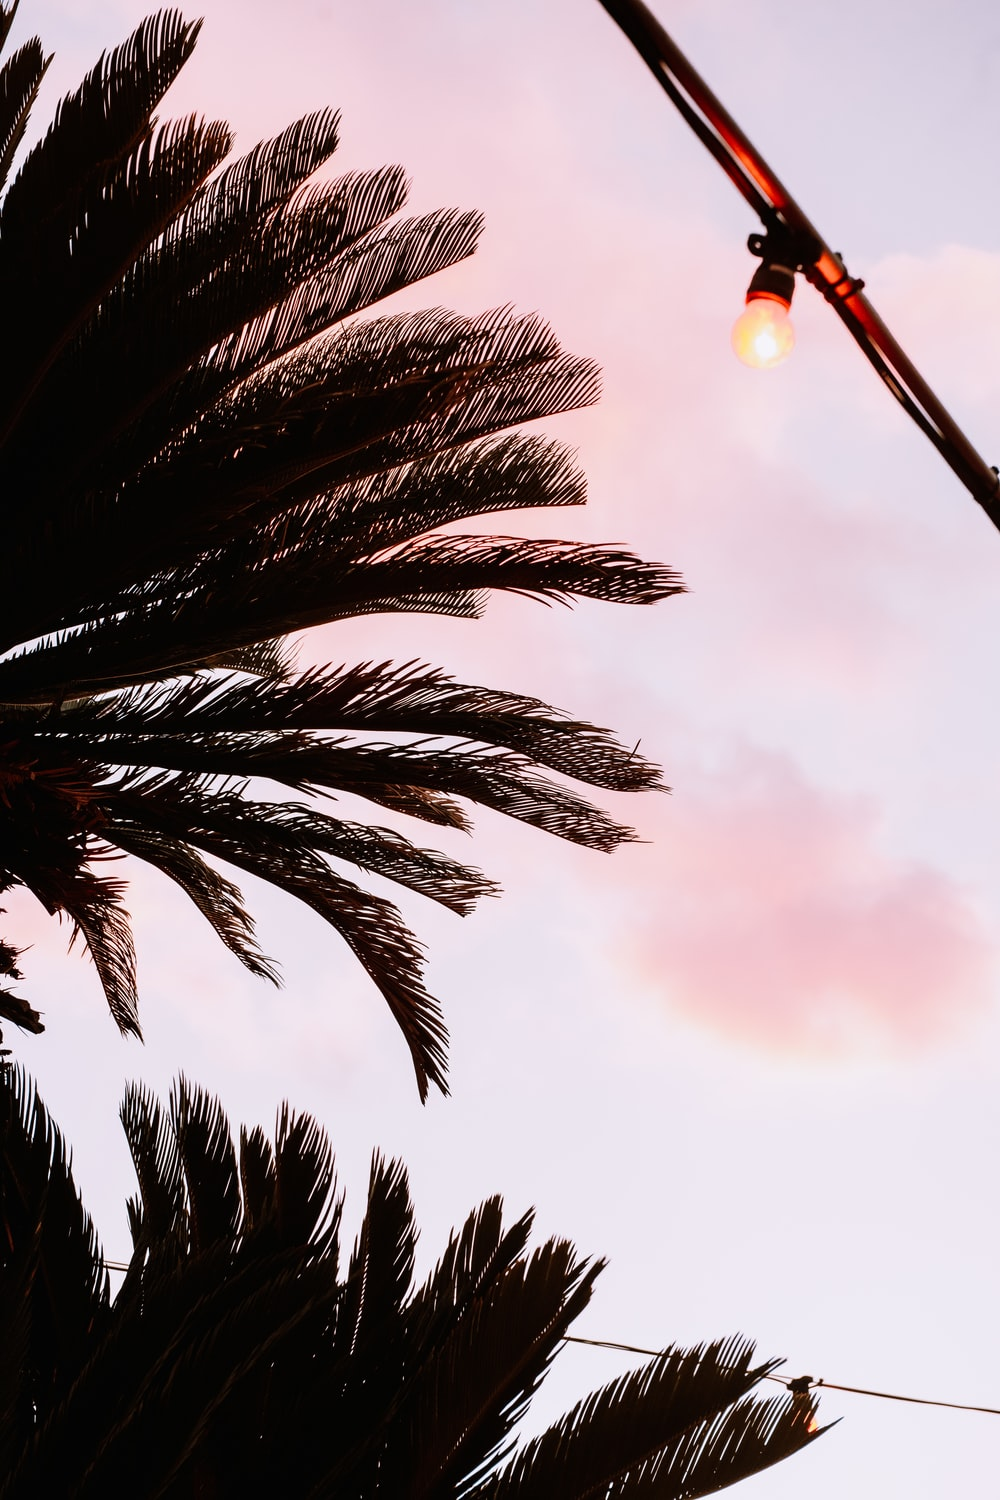 green palm tree under cloudy sky during daytime